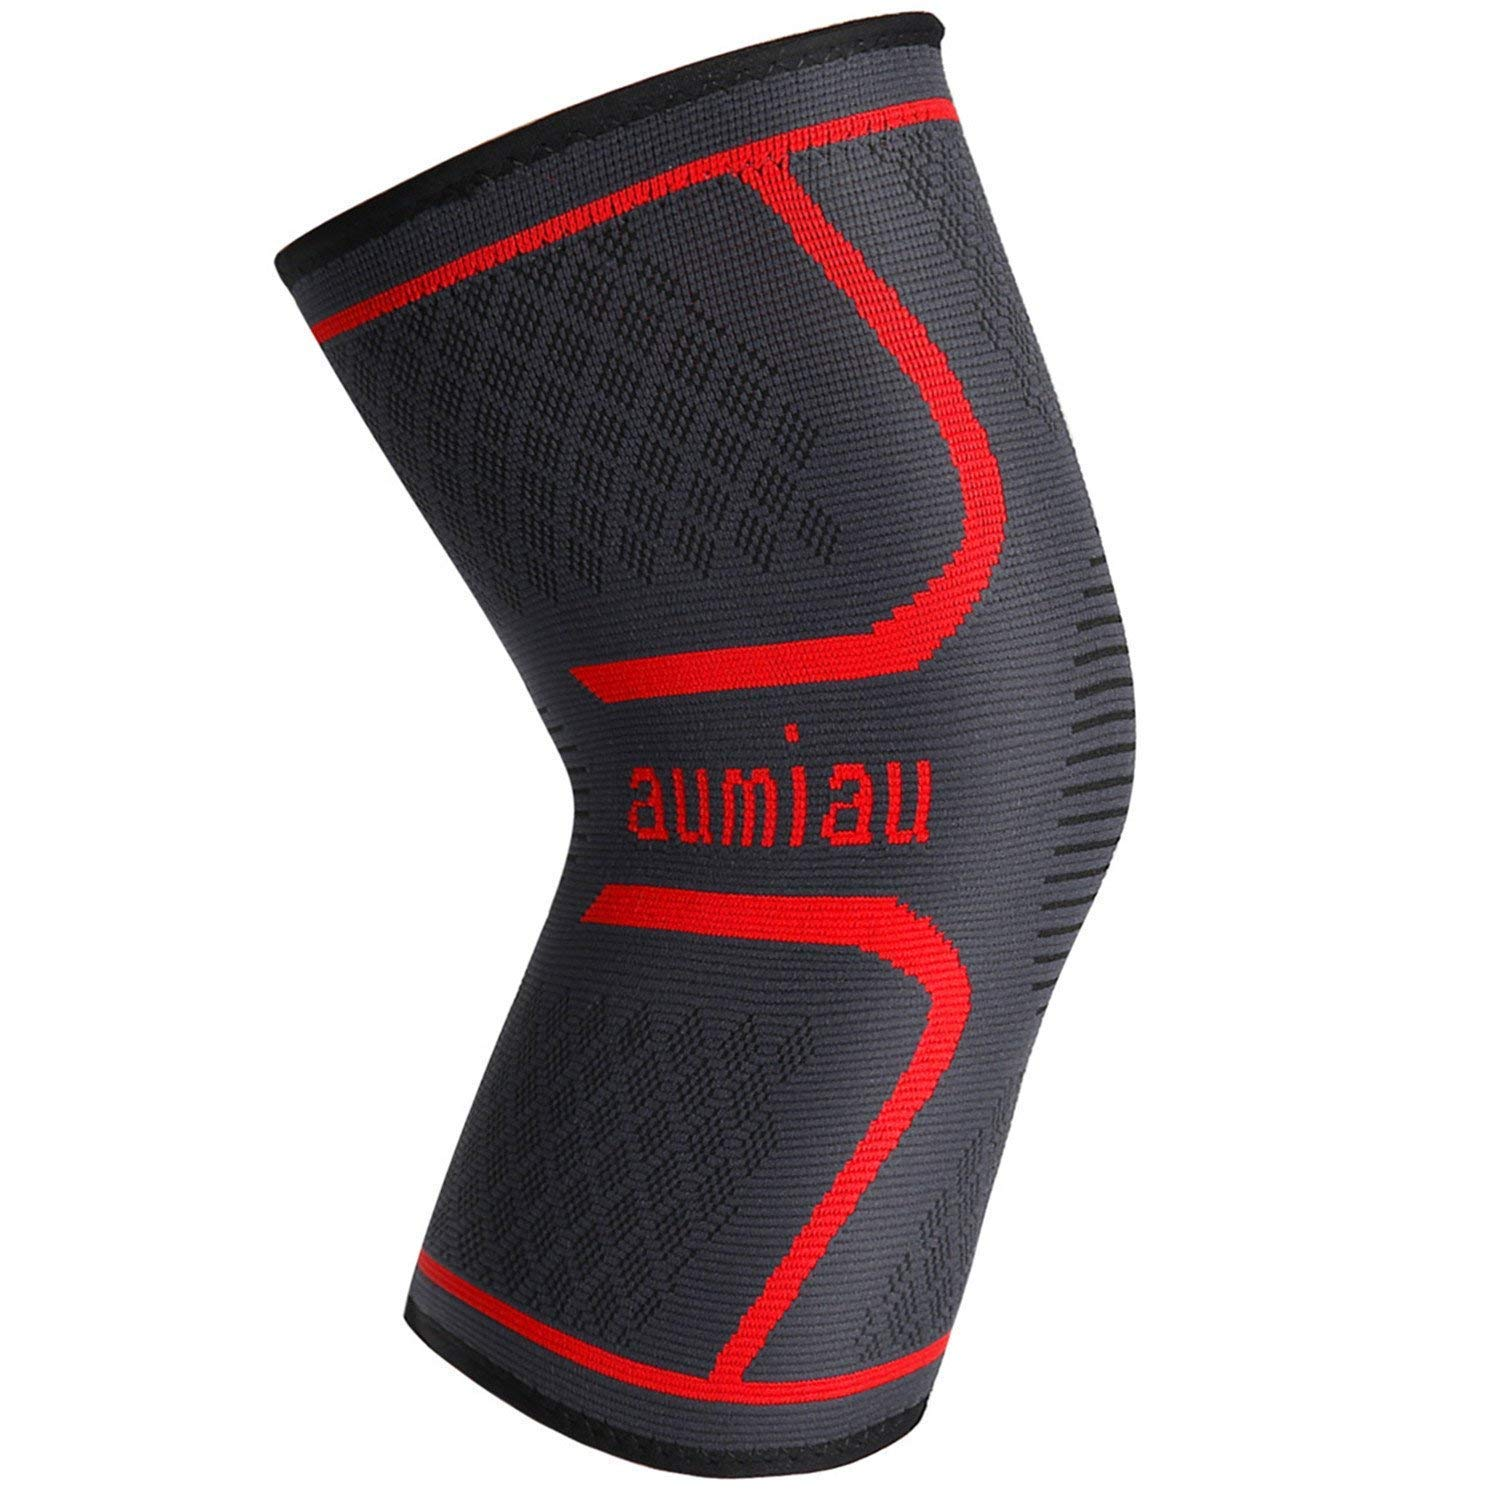 Knee Brace, Compression Knee Sleeve Support for Running, Biking, Jogging, Sports, Basketball,Joint Pain Relief, Meniscus Tear, ACL, Arthritis and Injury Recovery AUMIAU